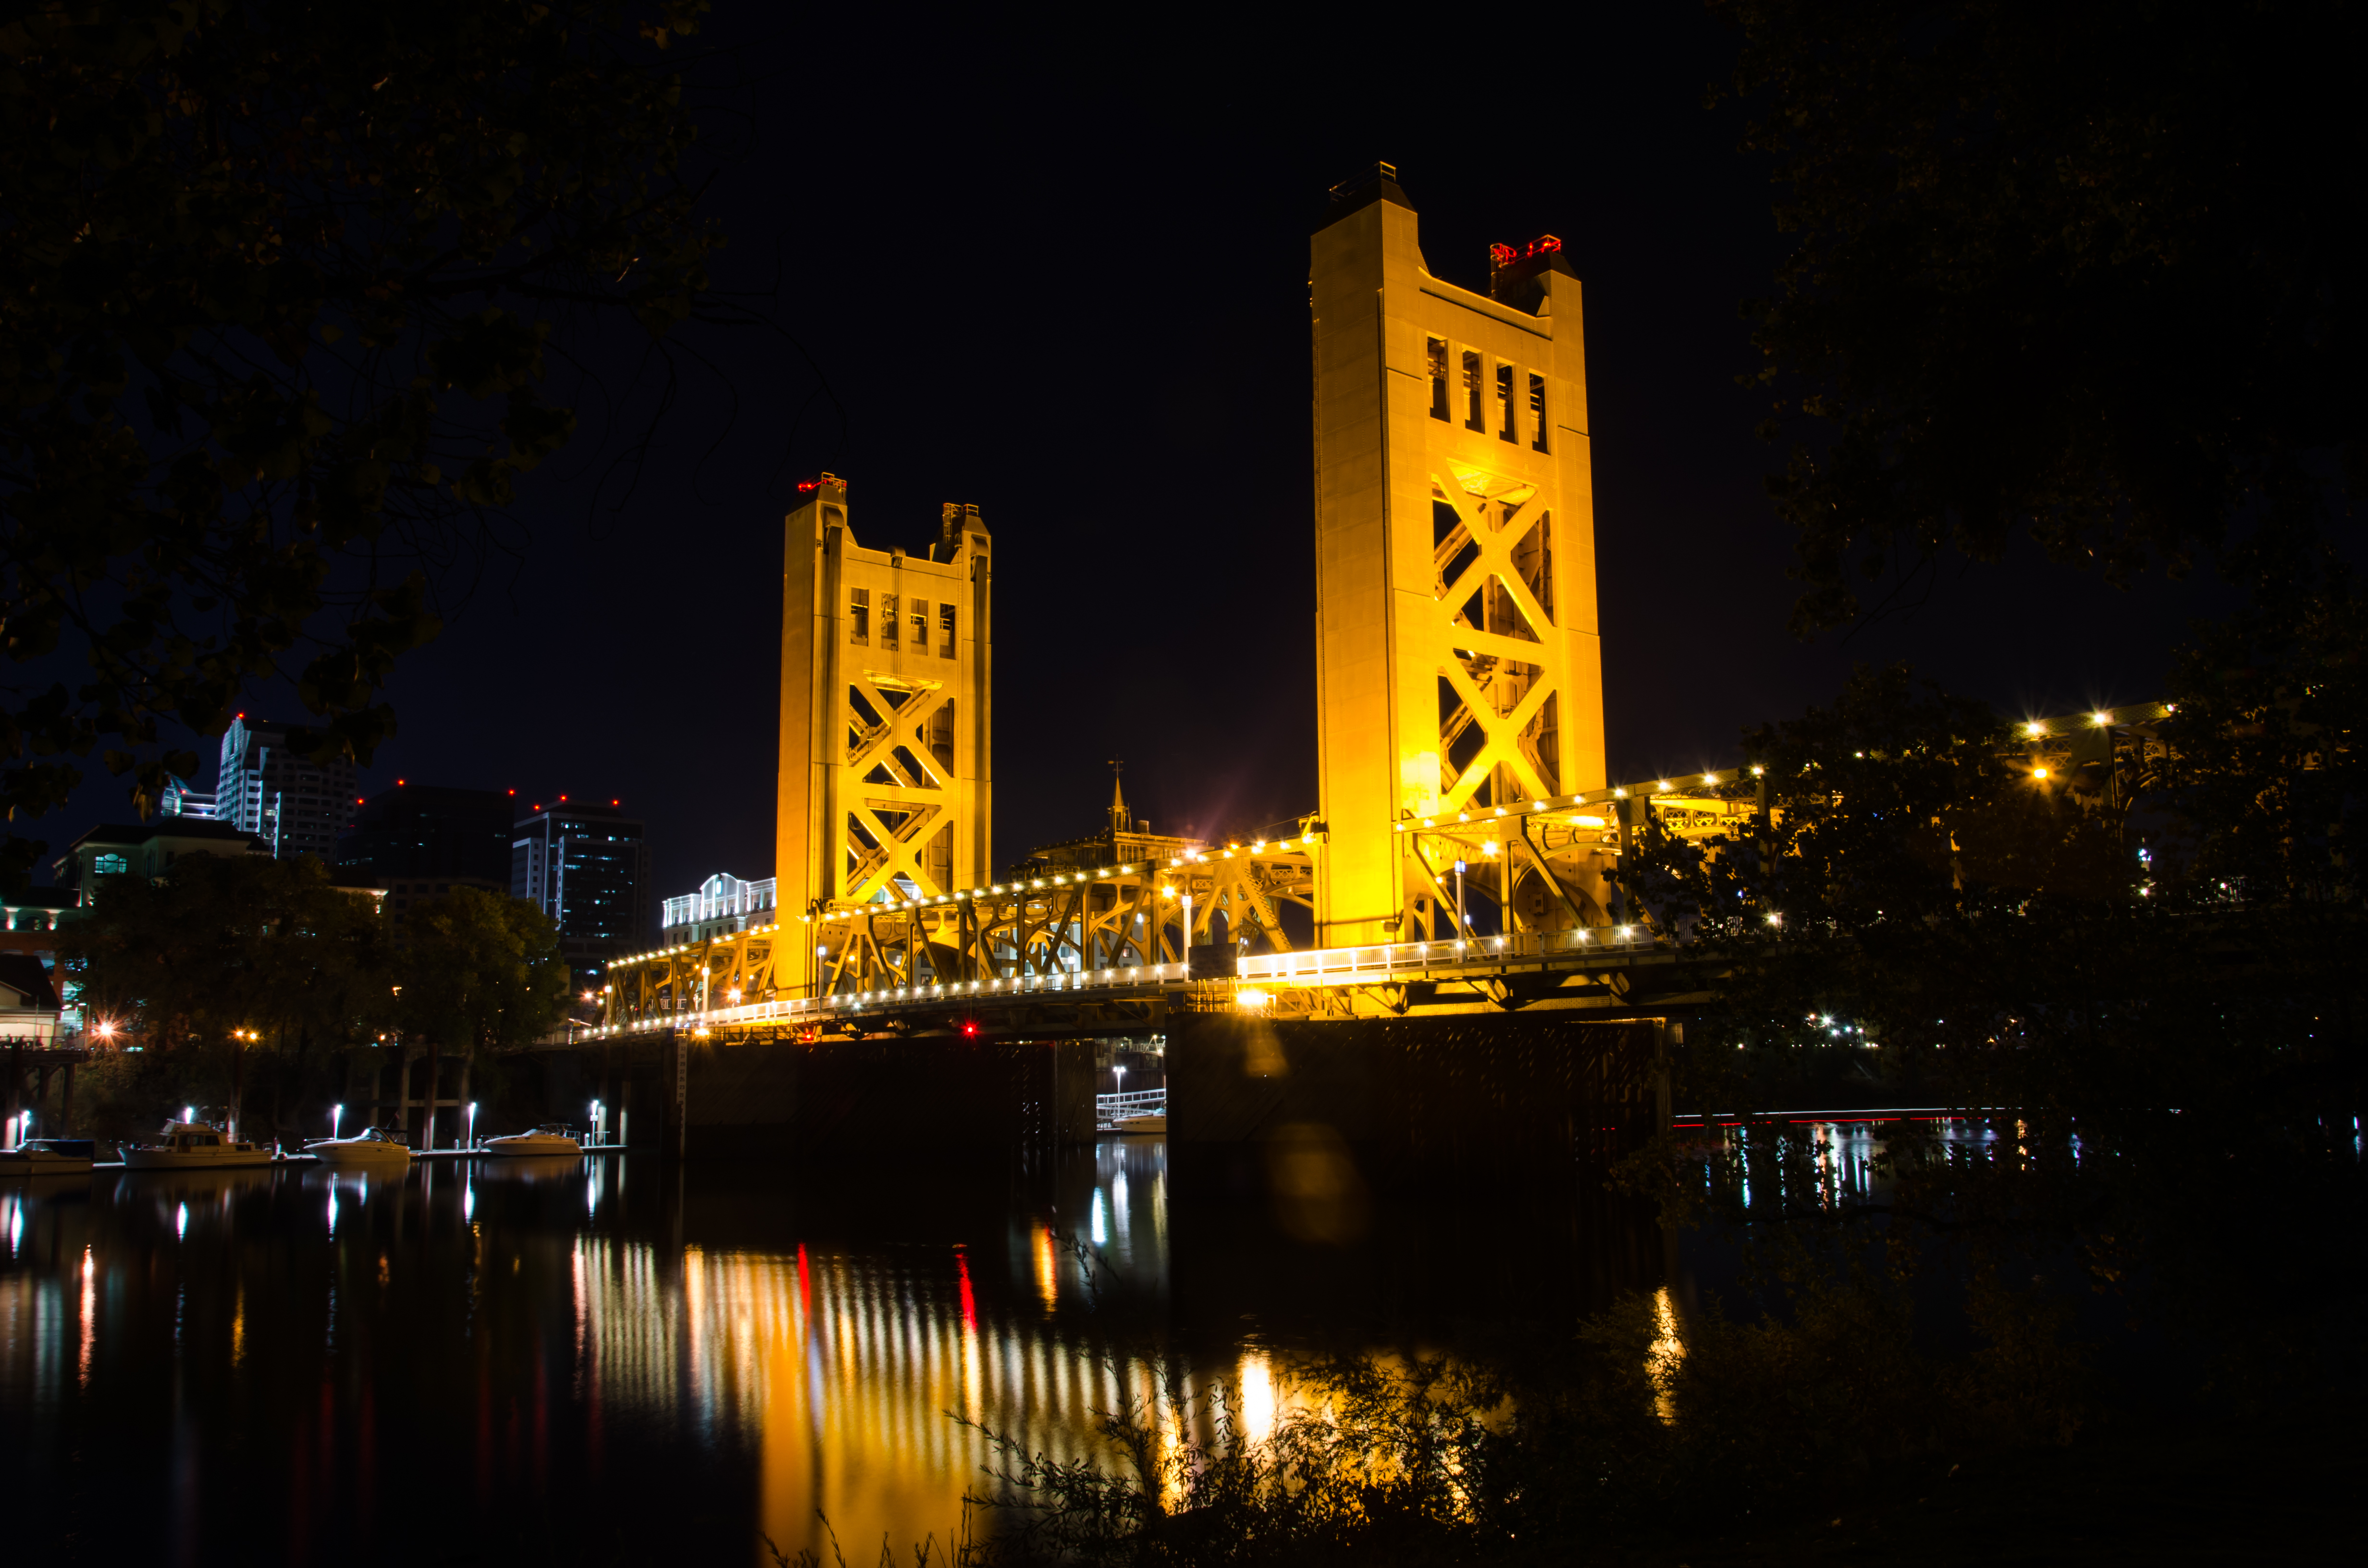 Sacramento's Tower Bridge at night.  Photographers Zheng Zheng